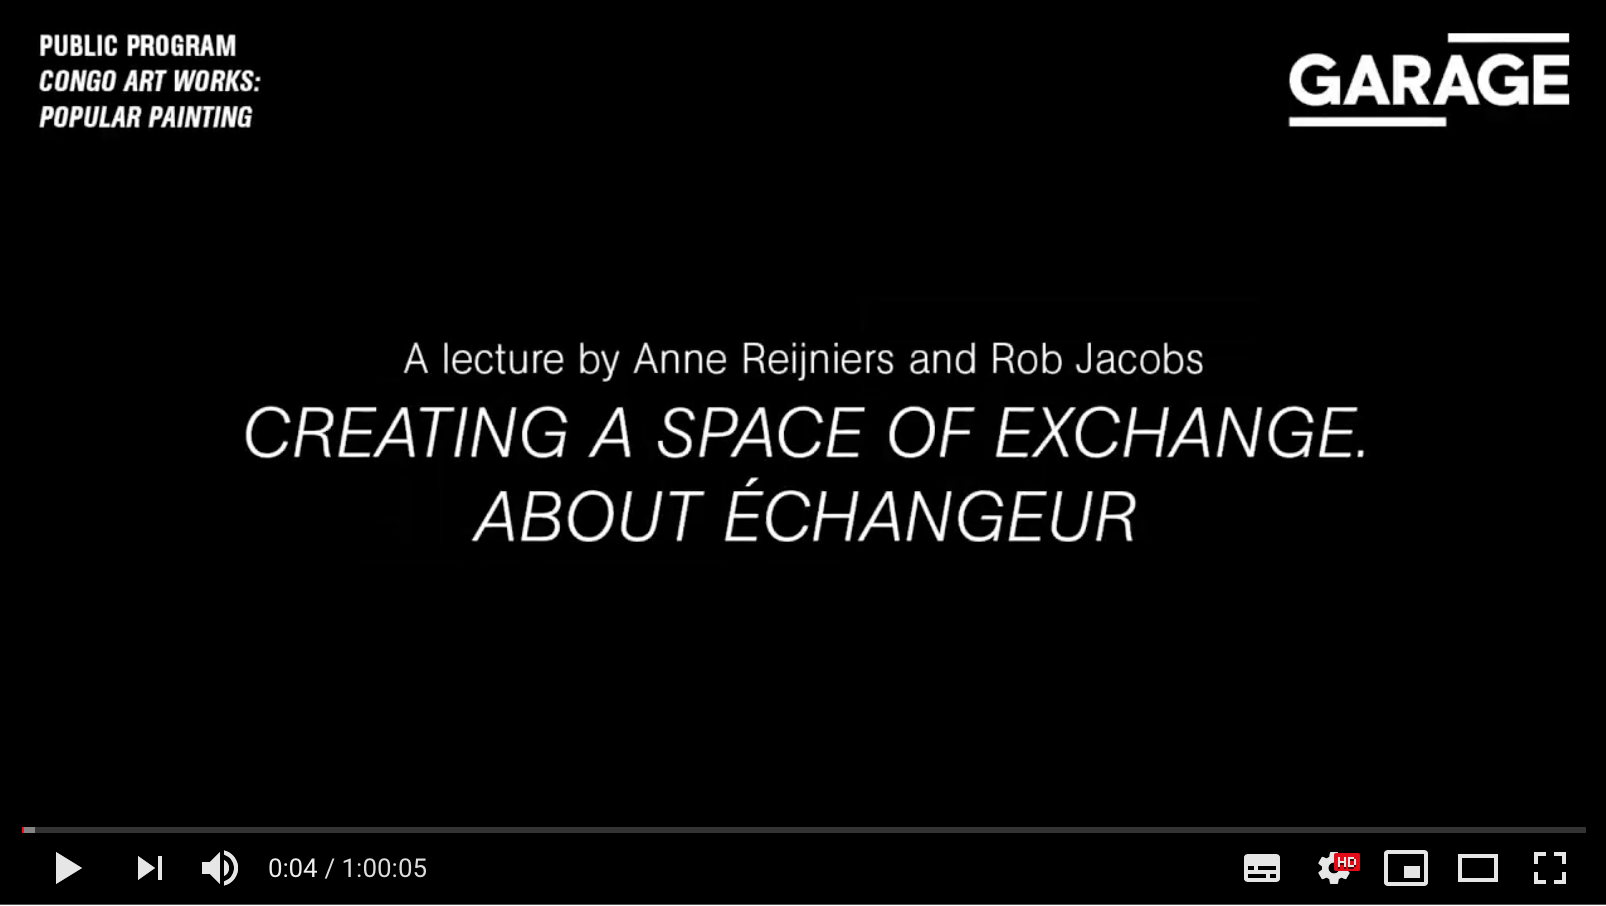 A SPACE OF EXCHANGE (2017)  - a lecture